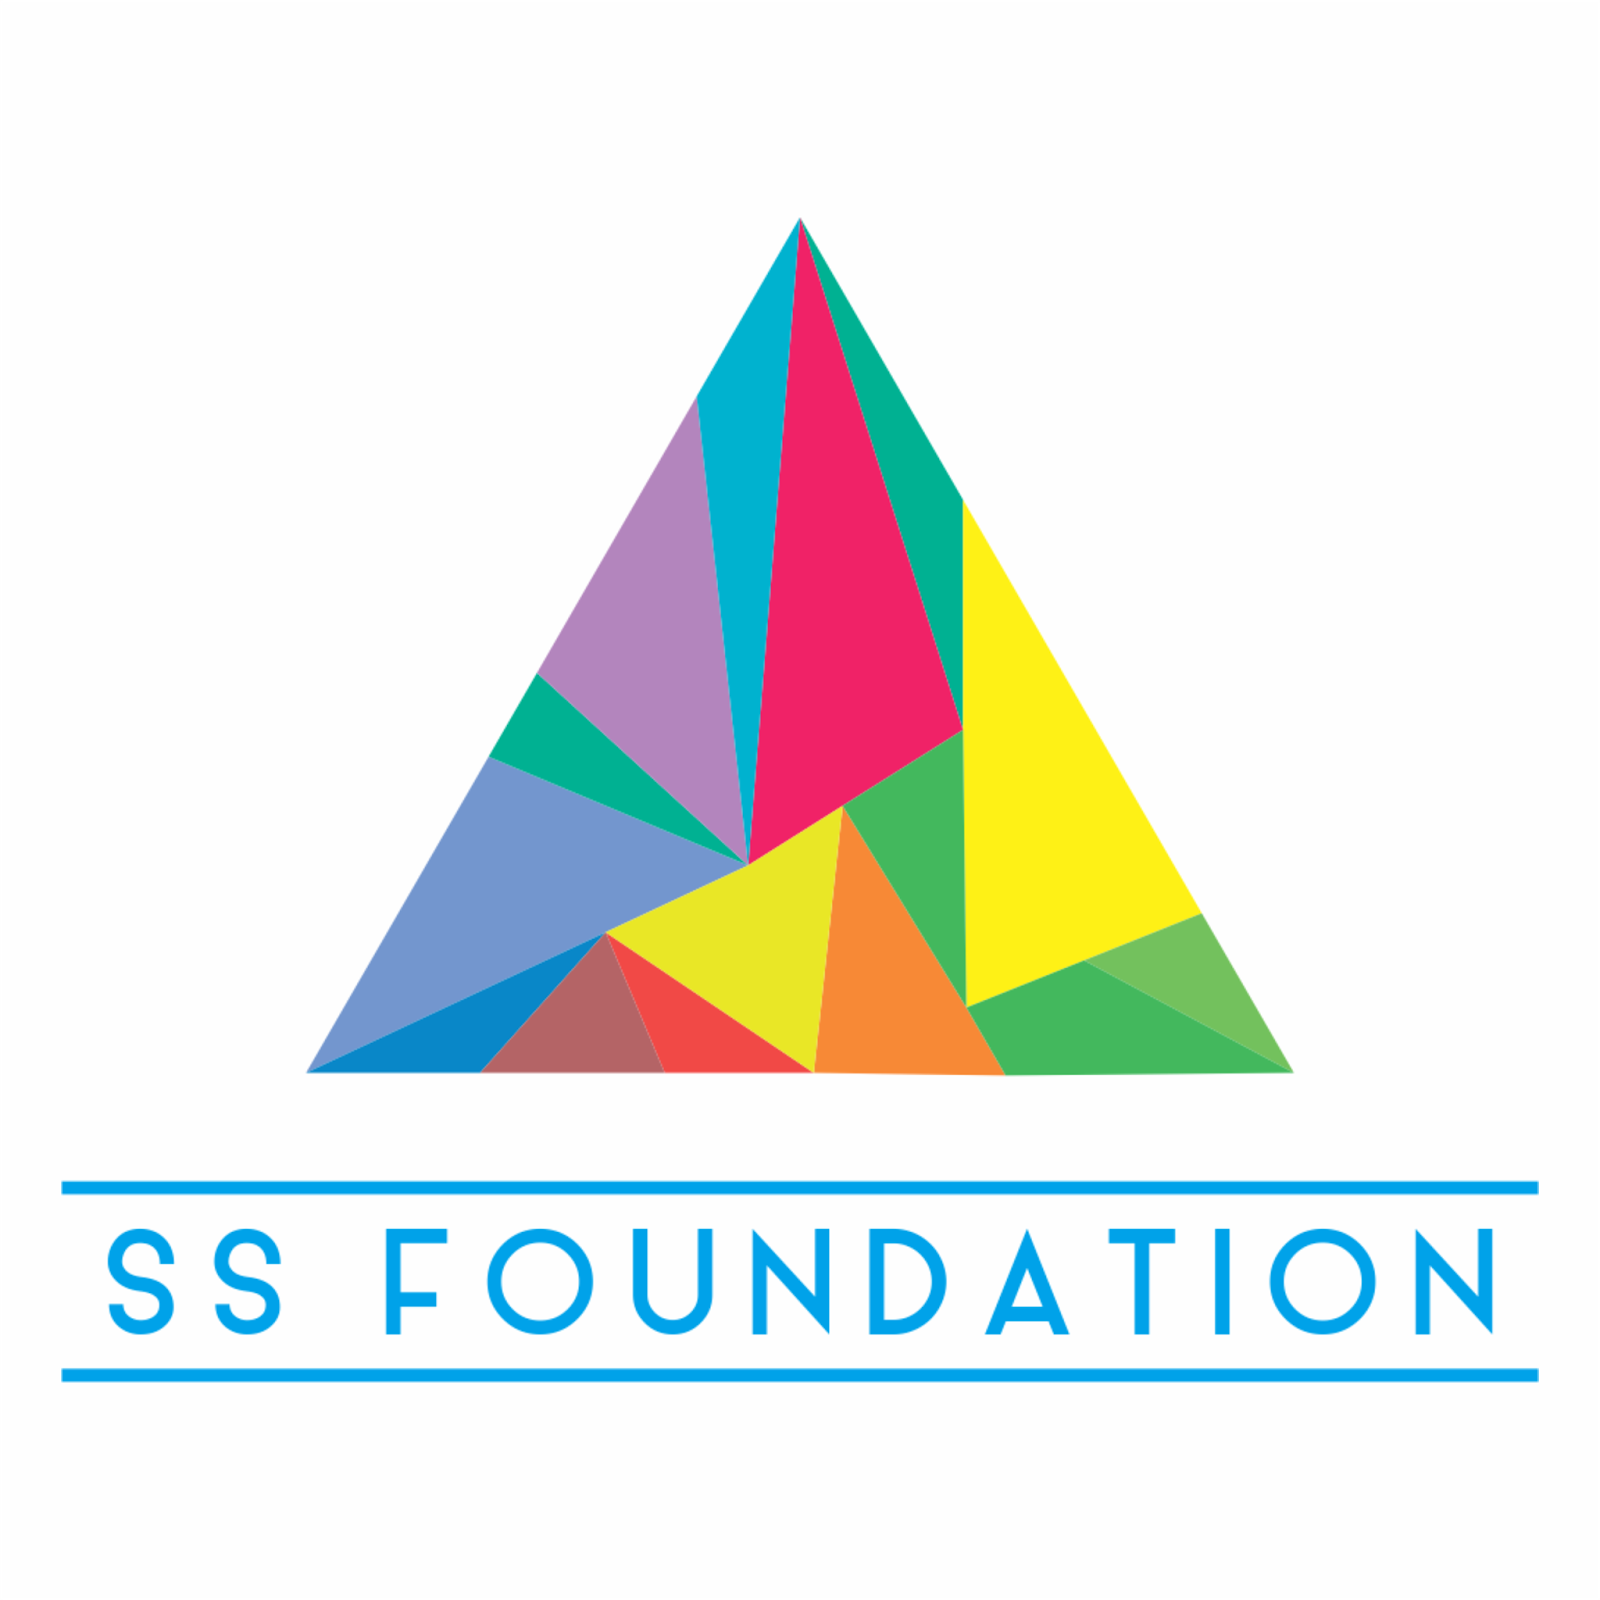 SS FOUNDATION